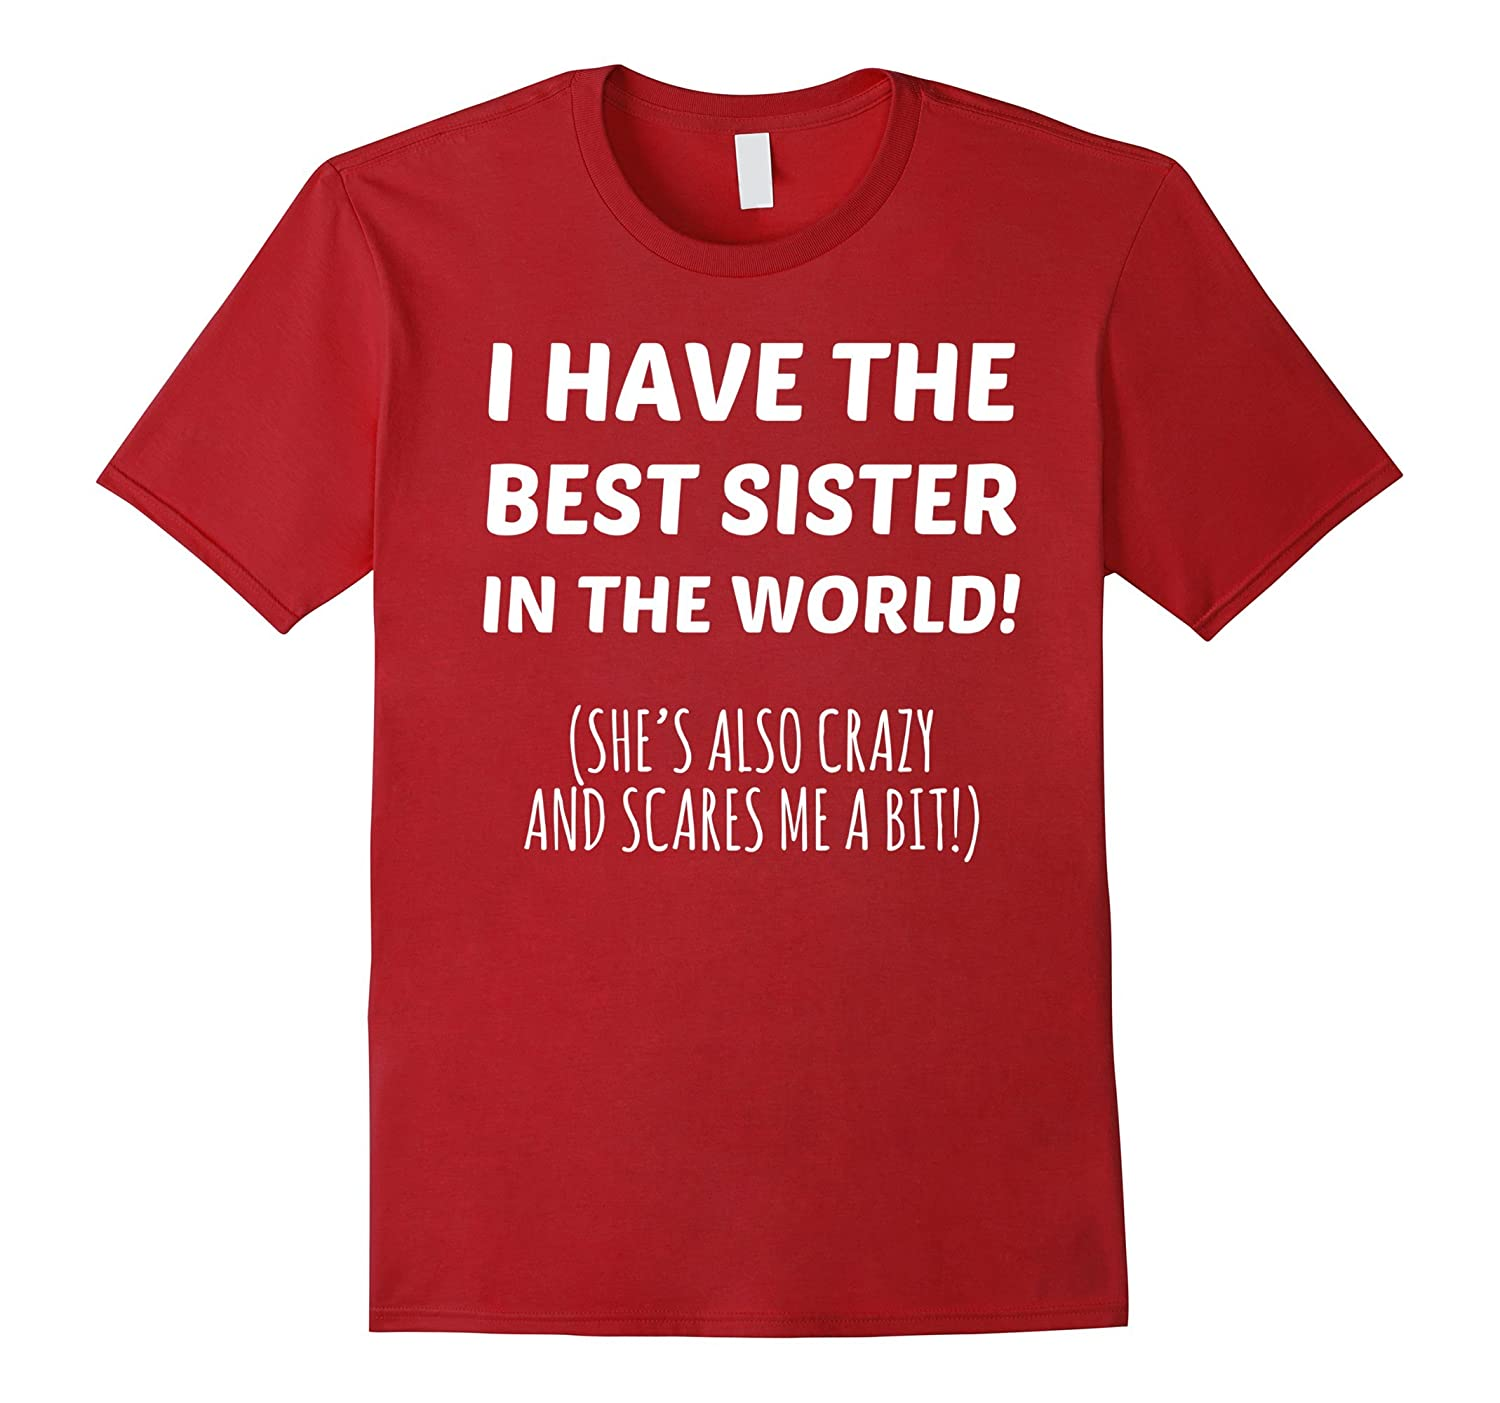 I Have The Best Sister In The World Quotes: I Have The Best Sister In The World Crazy Scares Me Shirt